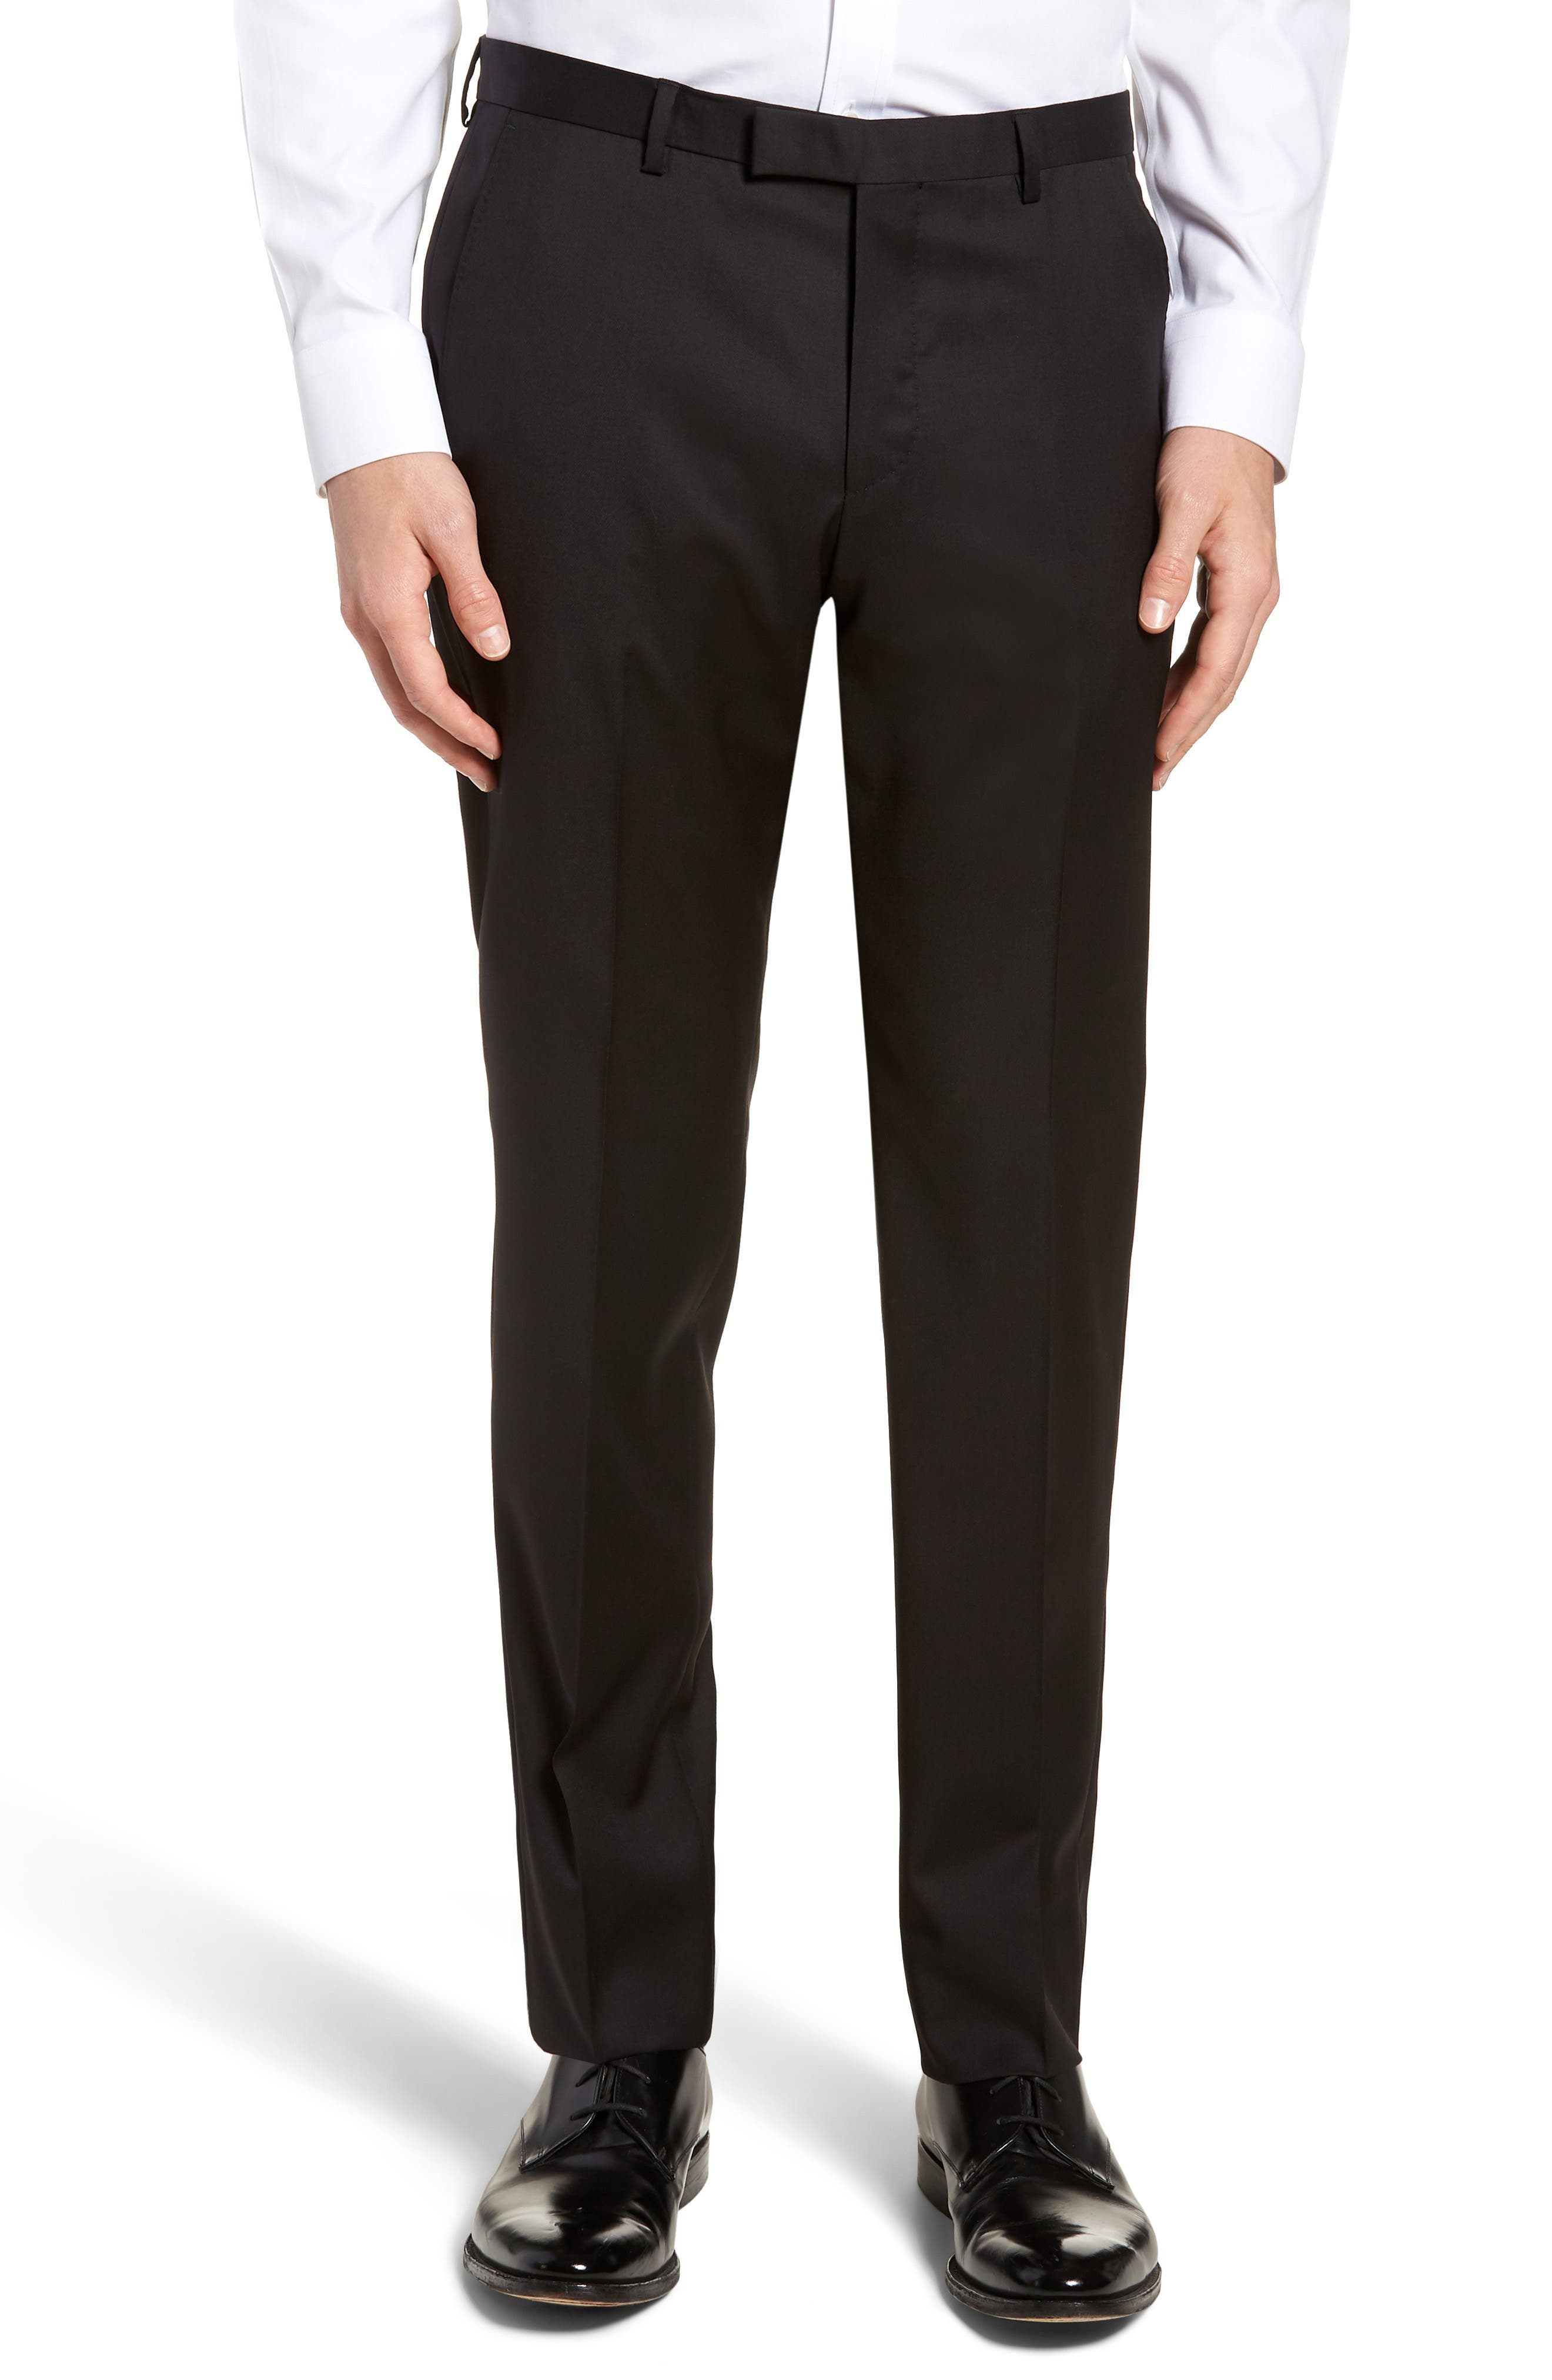 Lenon CYL Flat Front Solid Wool Trousers,                             Main thumbnail 1, color,                             BLACK